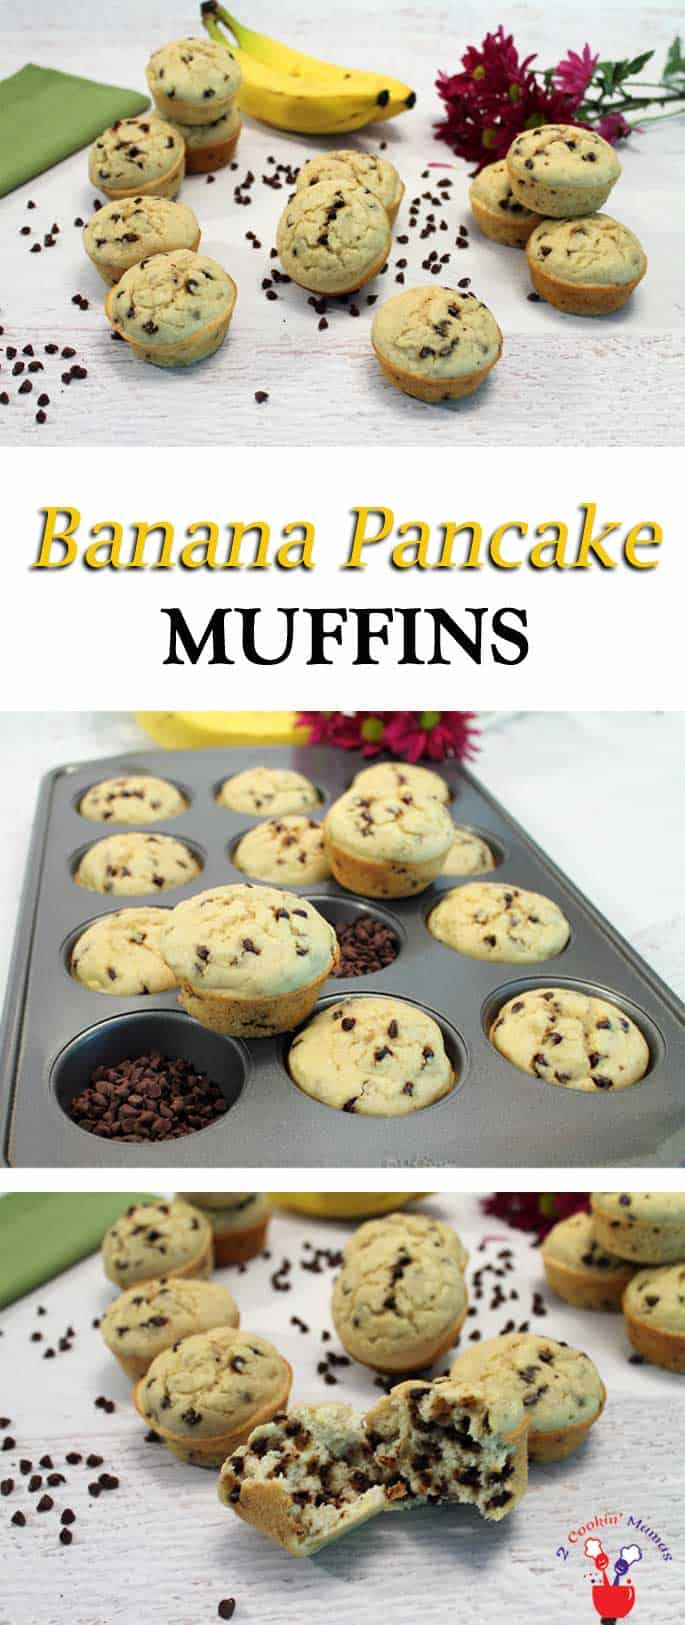 Banana Pancake Muffins | 2 Cookin Mamas A super easy banana pancake in muffin form for a yummy on the go breakfast treat. #recipe